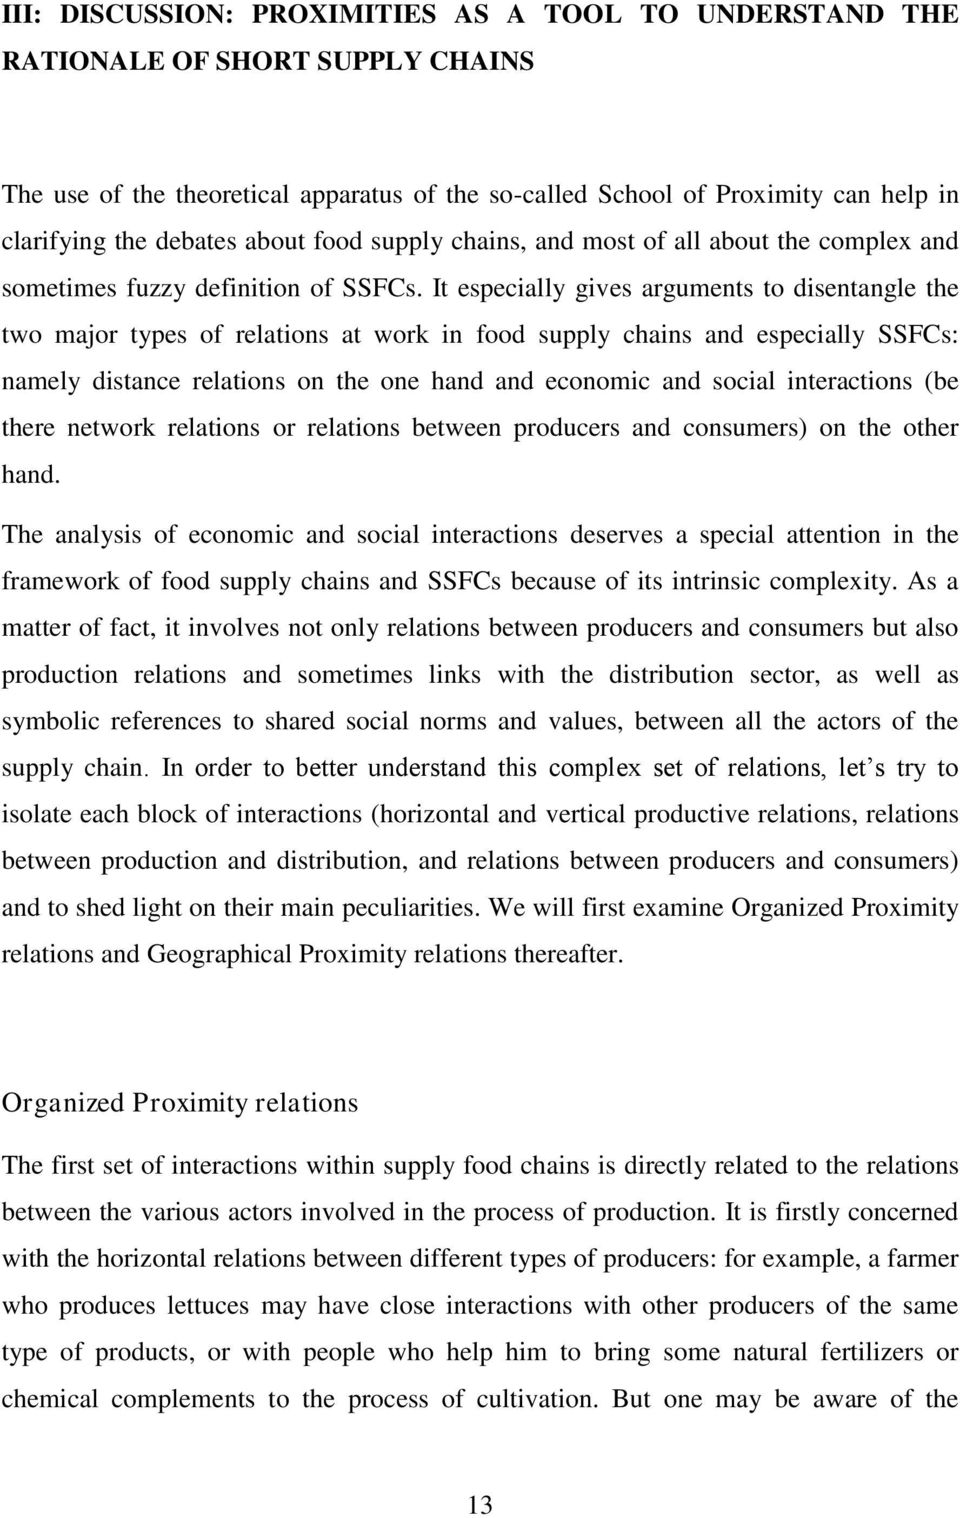 It especially gives arguments to disentangle the two major types of relations at work in food supply chains and especially SSFCs: namely distance relations on the one hand and economic and social